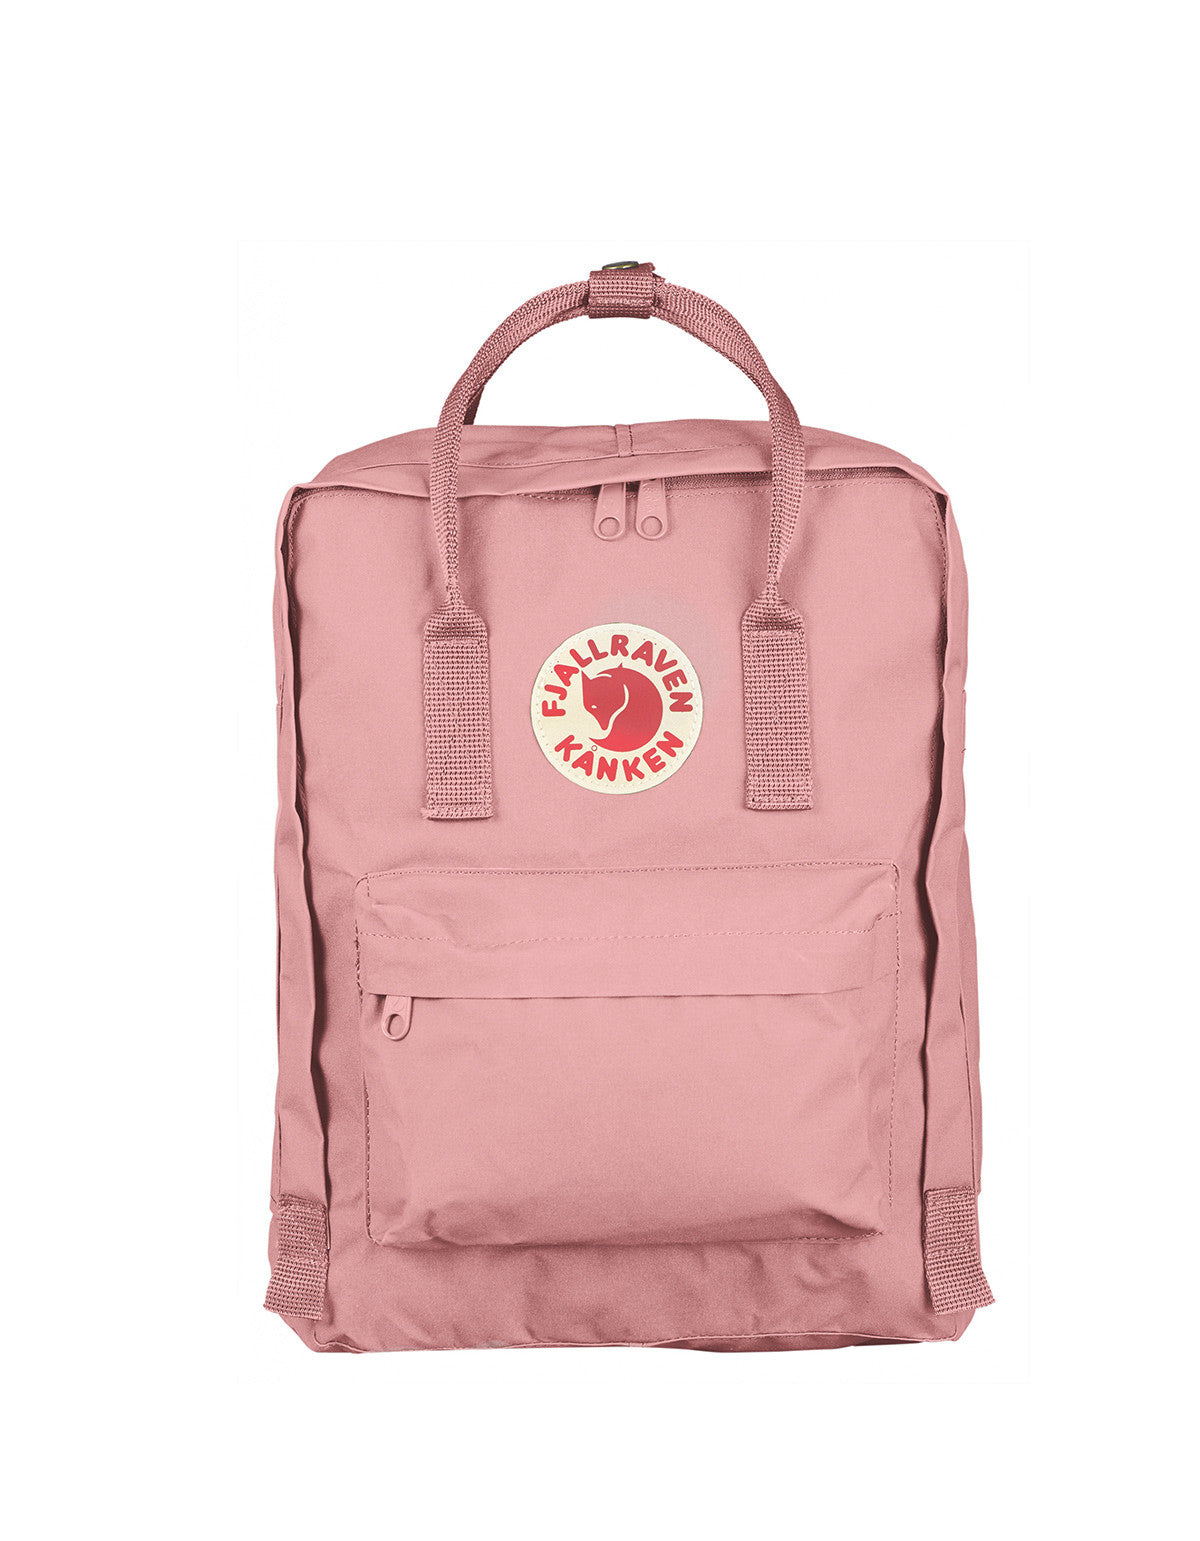 Fjallraven Kanken Backpack Pink - Still Life